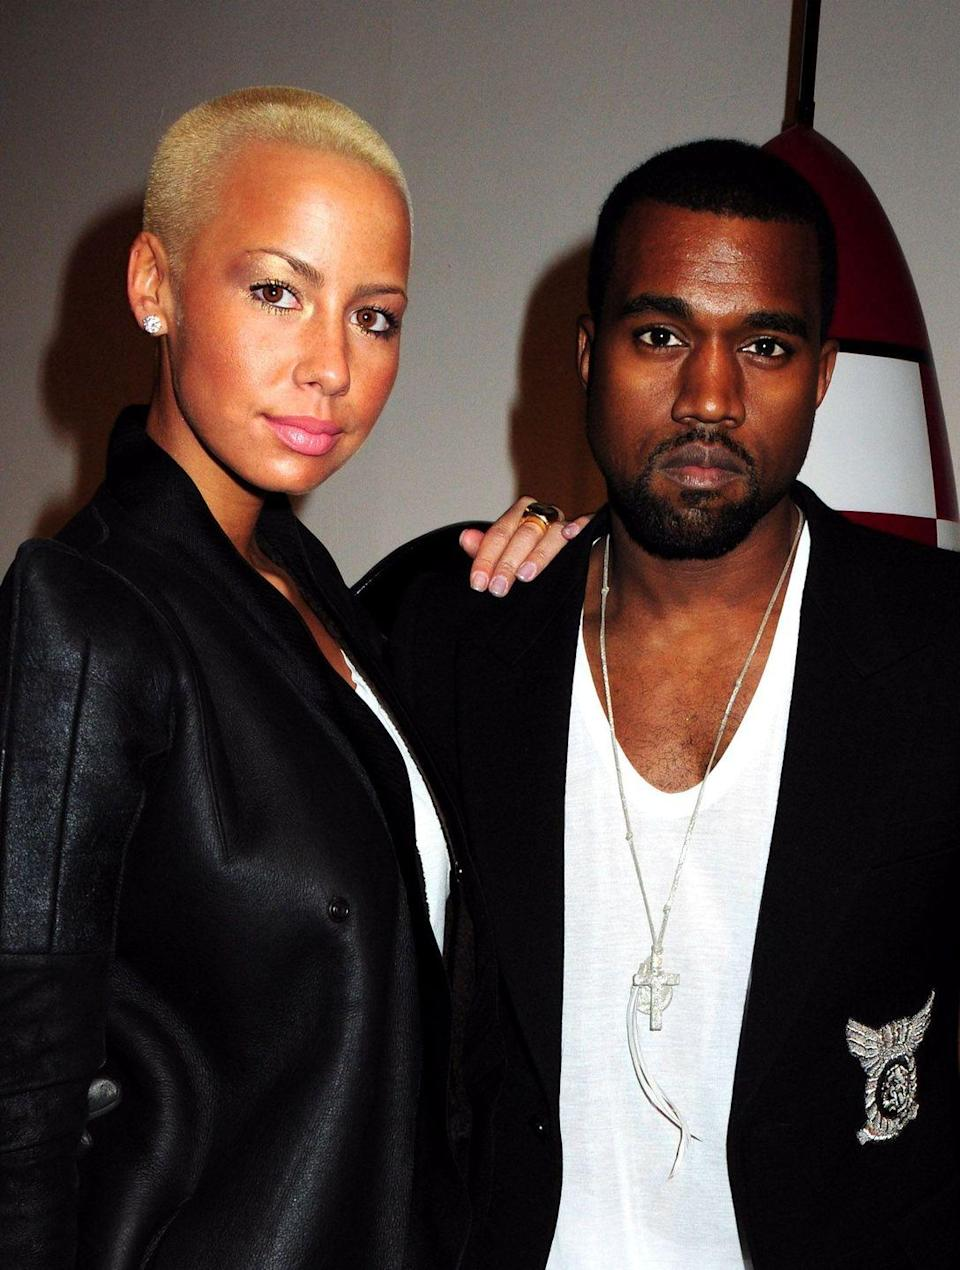 "<p>Following Kanye's Twitter rant against Wiz Khalifa, which included references to Amber, MUVA took matters into her own hands. If <a href=""https://twitter.com/DaRealAmberRose/status/692445698160091136"" rel=""nofollow noopener"" target=""_blank"" data-ylk=""slk:#FingersInTheBootyAssBitch"" class=""link rapid-noclick-resp"">#FingersInTheBootyAssBitch</a> doesn't make you stand up and clap, you have some <a href=""https://www.cosmopolitan.com/entertainment/celebs/news/a52777/amber-rose-responds-to-kanye-rant/"" rel=""nofollow noopener"" target=""_blank"" data-ylk=""slk:reading"" class=""link rapid-noclick-resp"">reading</a> to do. <a href=""https://www.cosmopolitan.com/entertainment/celebs/news/a52855/kanye-west-responds-to-amber-rose/"" rel=""nofollow noopener"" target=""_blank"" data-ylk=""slk:Kanye tried to remedy the situation days later"" class=""link rapid-noclick-resp"">Kanye tried to remedy the situation days later</a>, also on Twitter (""Exes can be mad but just know I never let them play with my ass. I don't do that… I stay away from that area all together""), but it felt a little late.</p>"